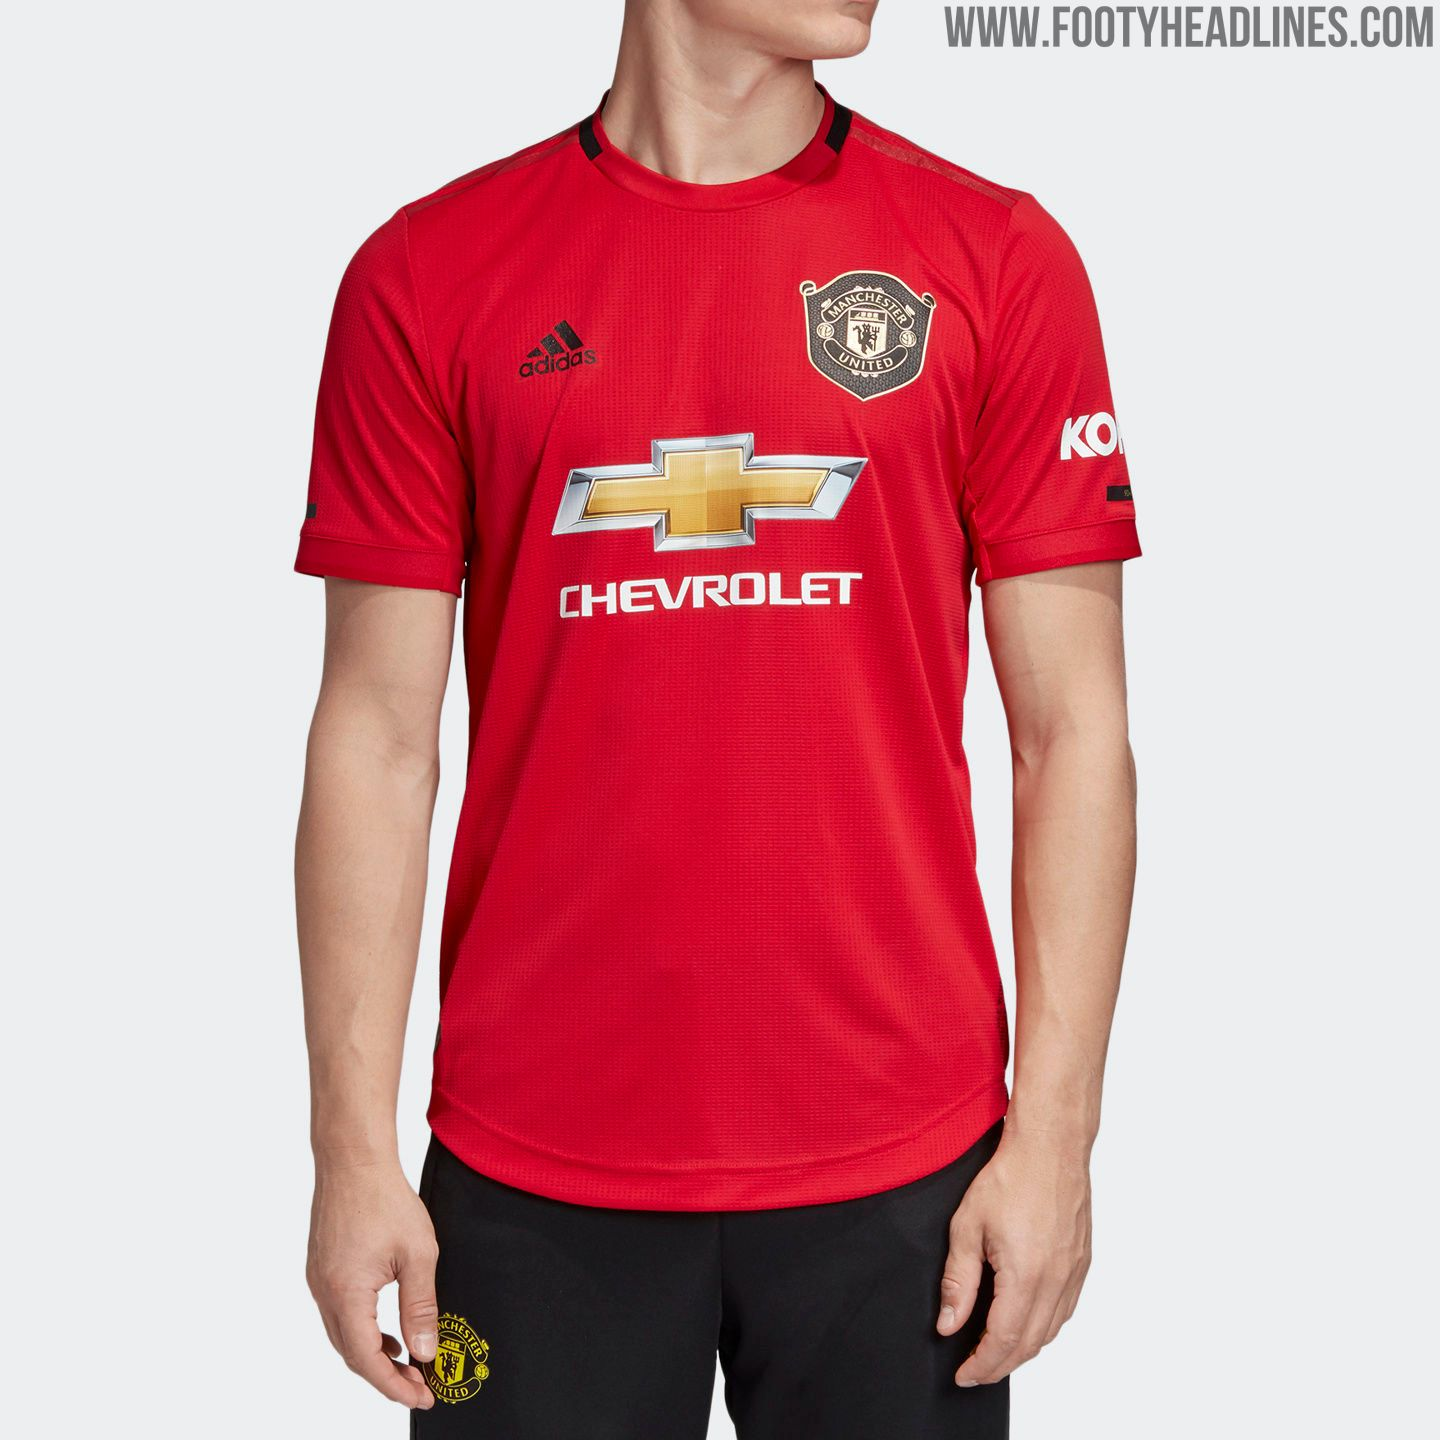 Manchester United 19-20 Home Kit Released - Footy Headlines